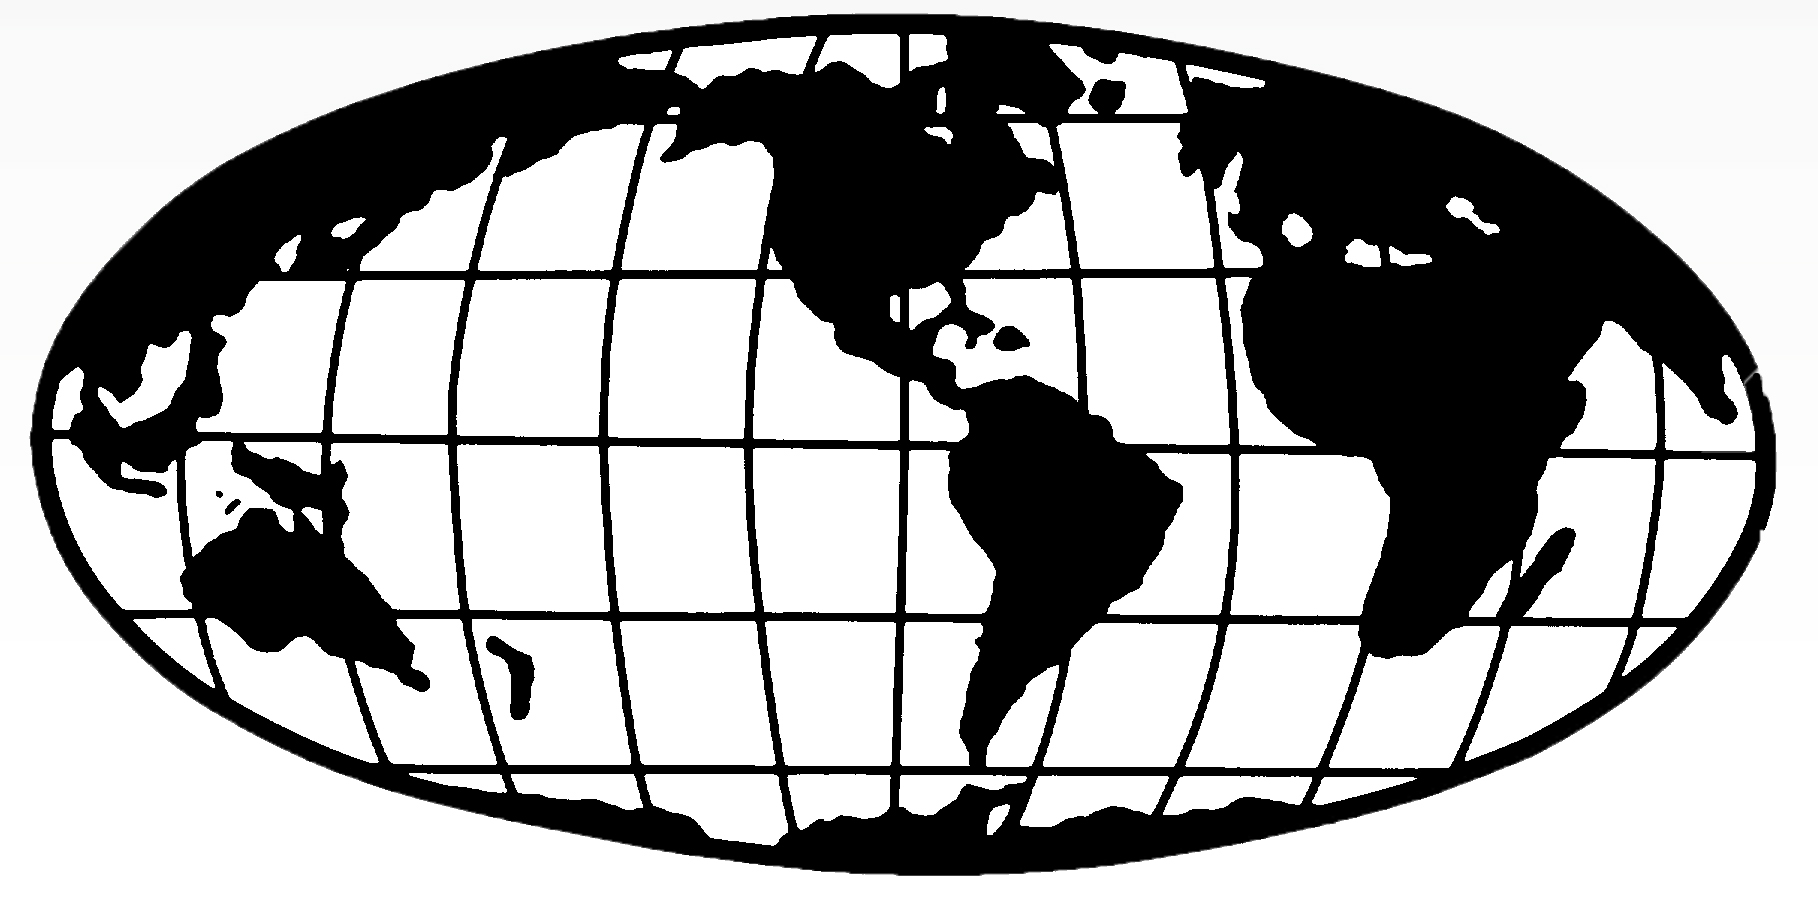 Line Drawing Earth : Globe line art cliparts